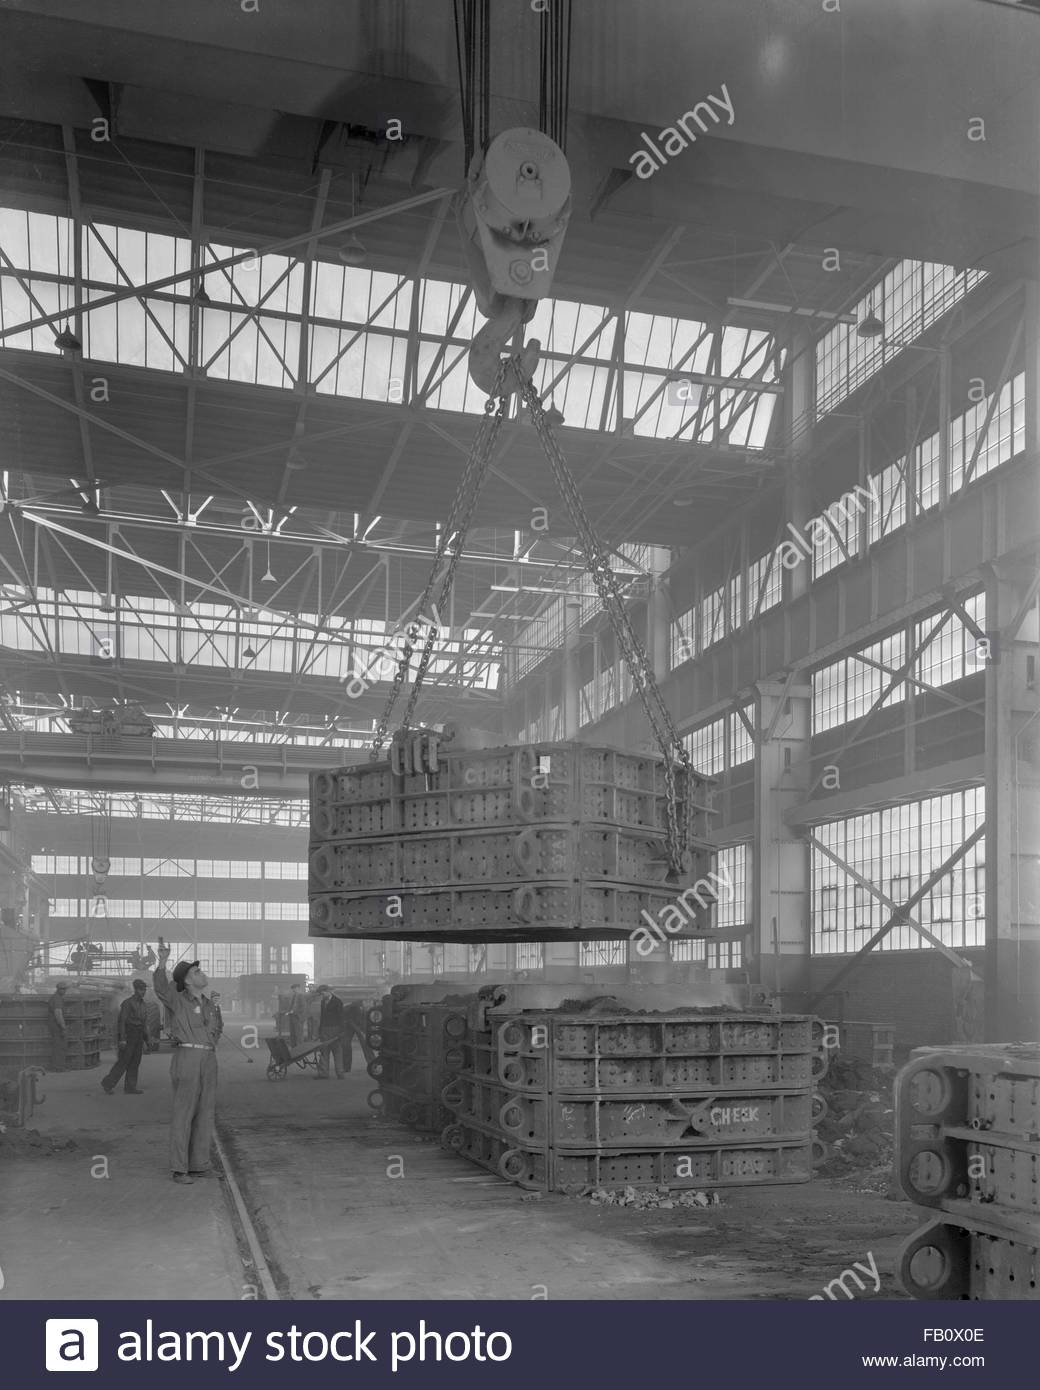 American Steel Foundries plant in East Chicago (Ill ), 1943